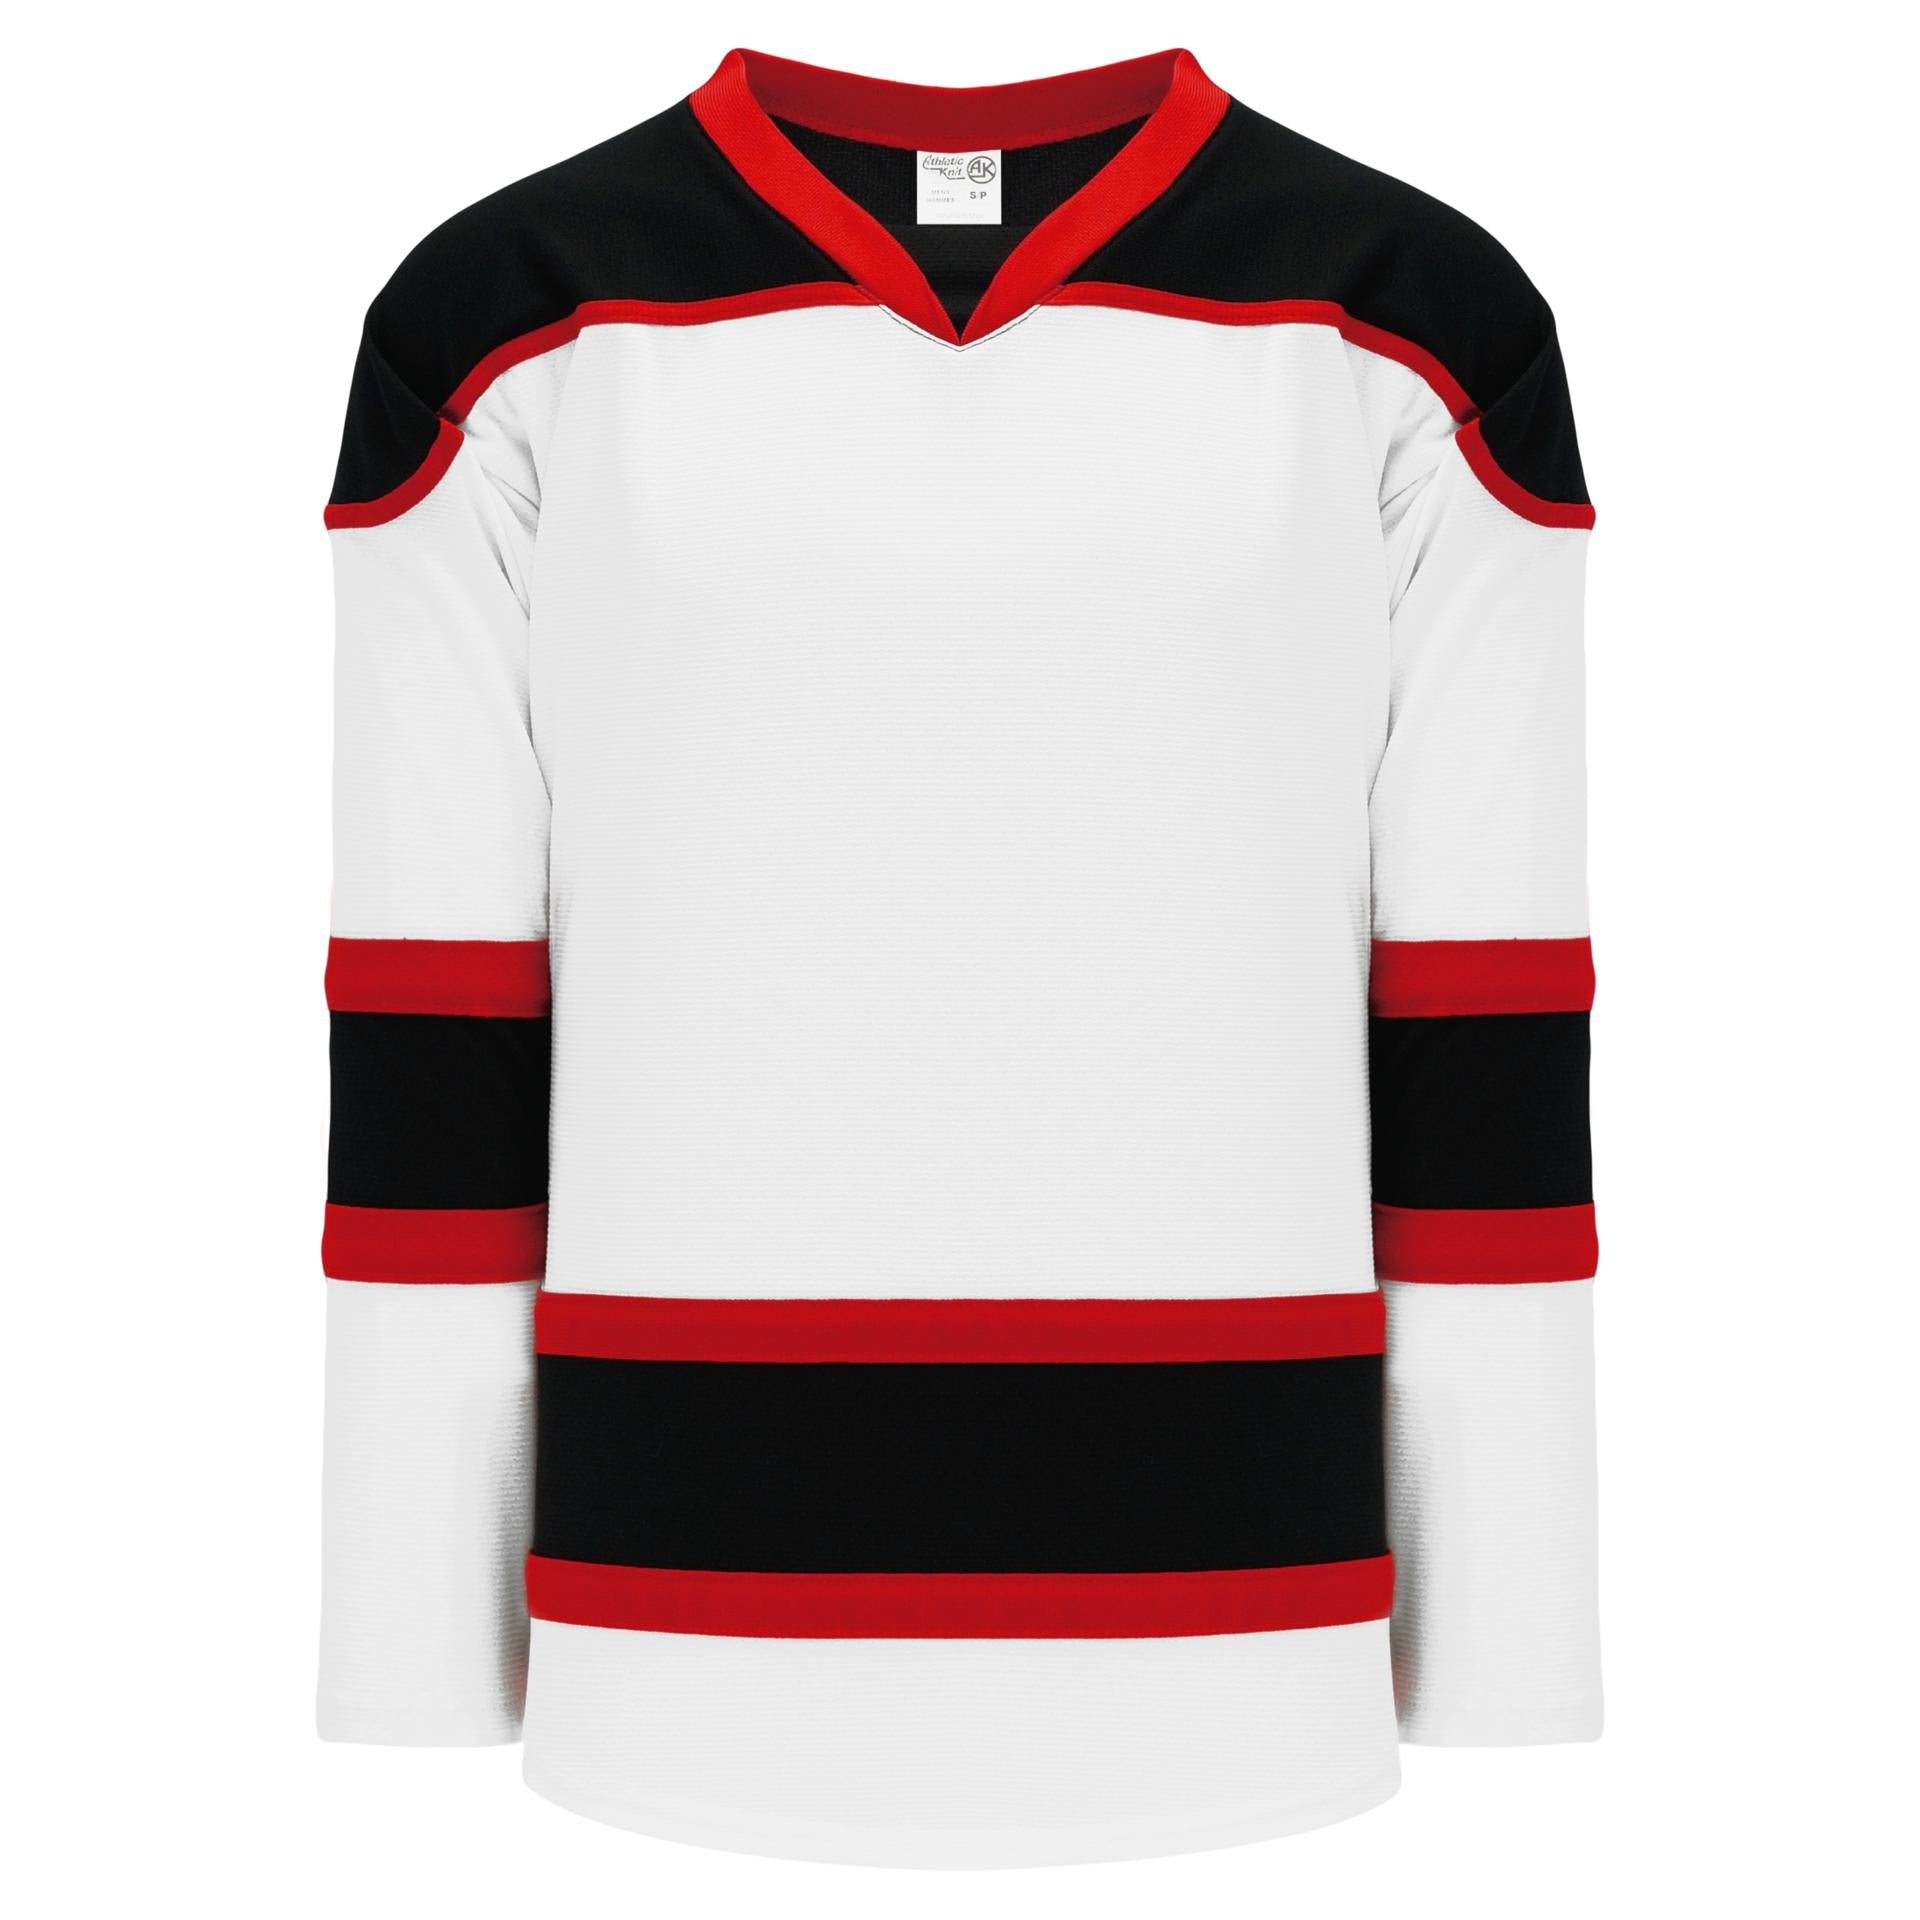 black and red hockey jersey